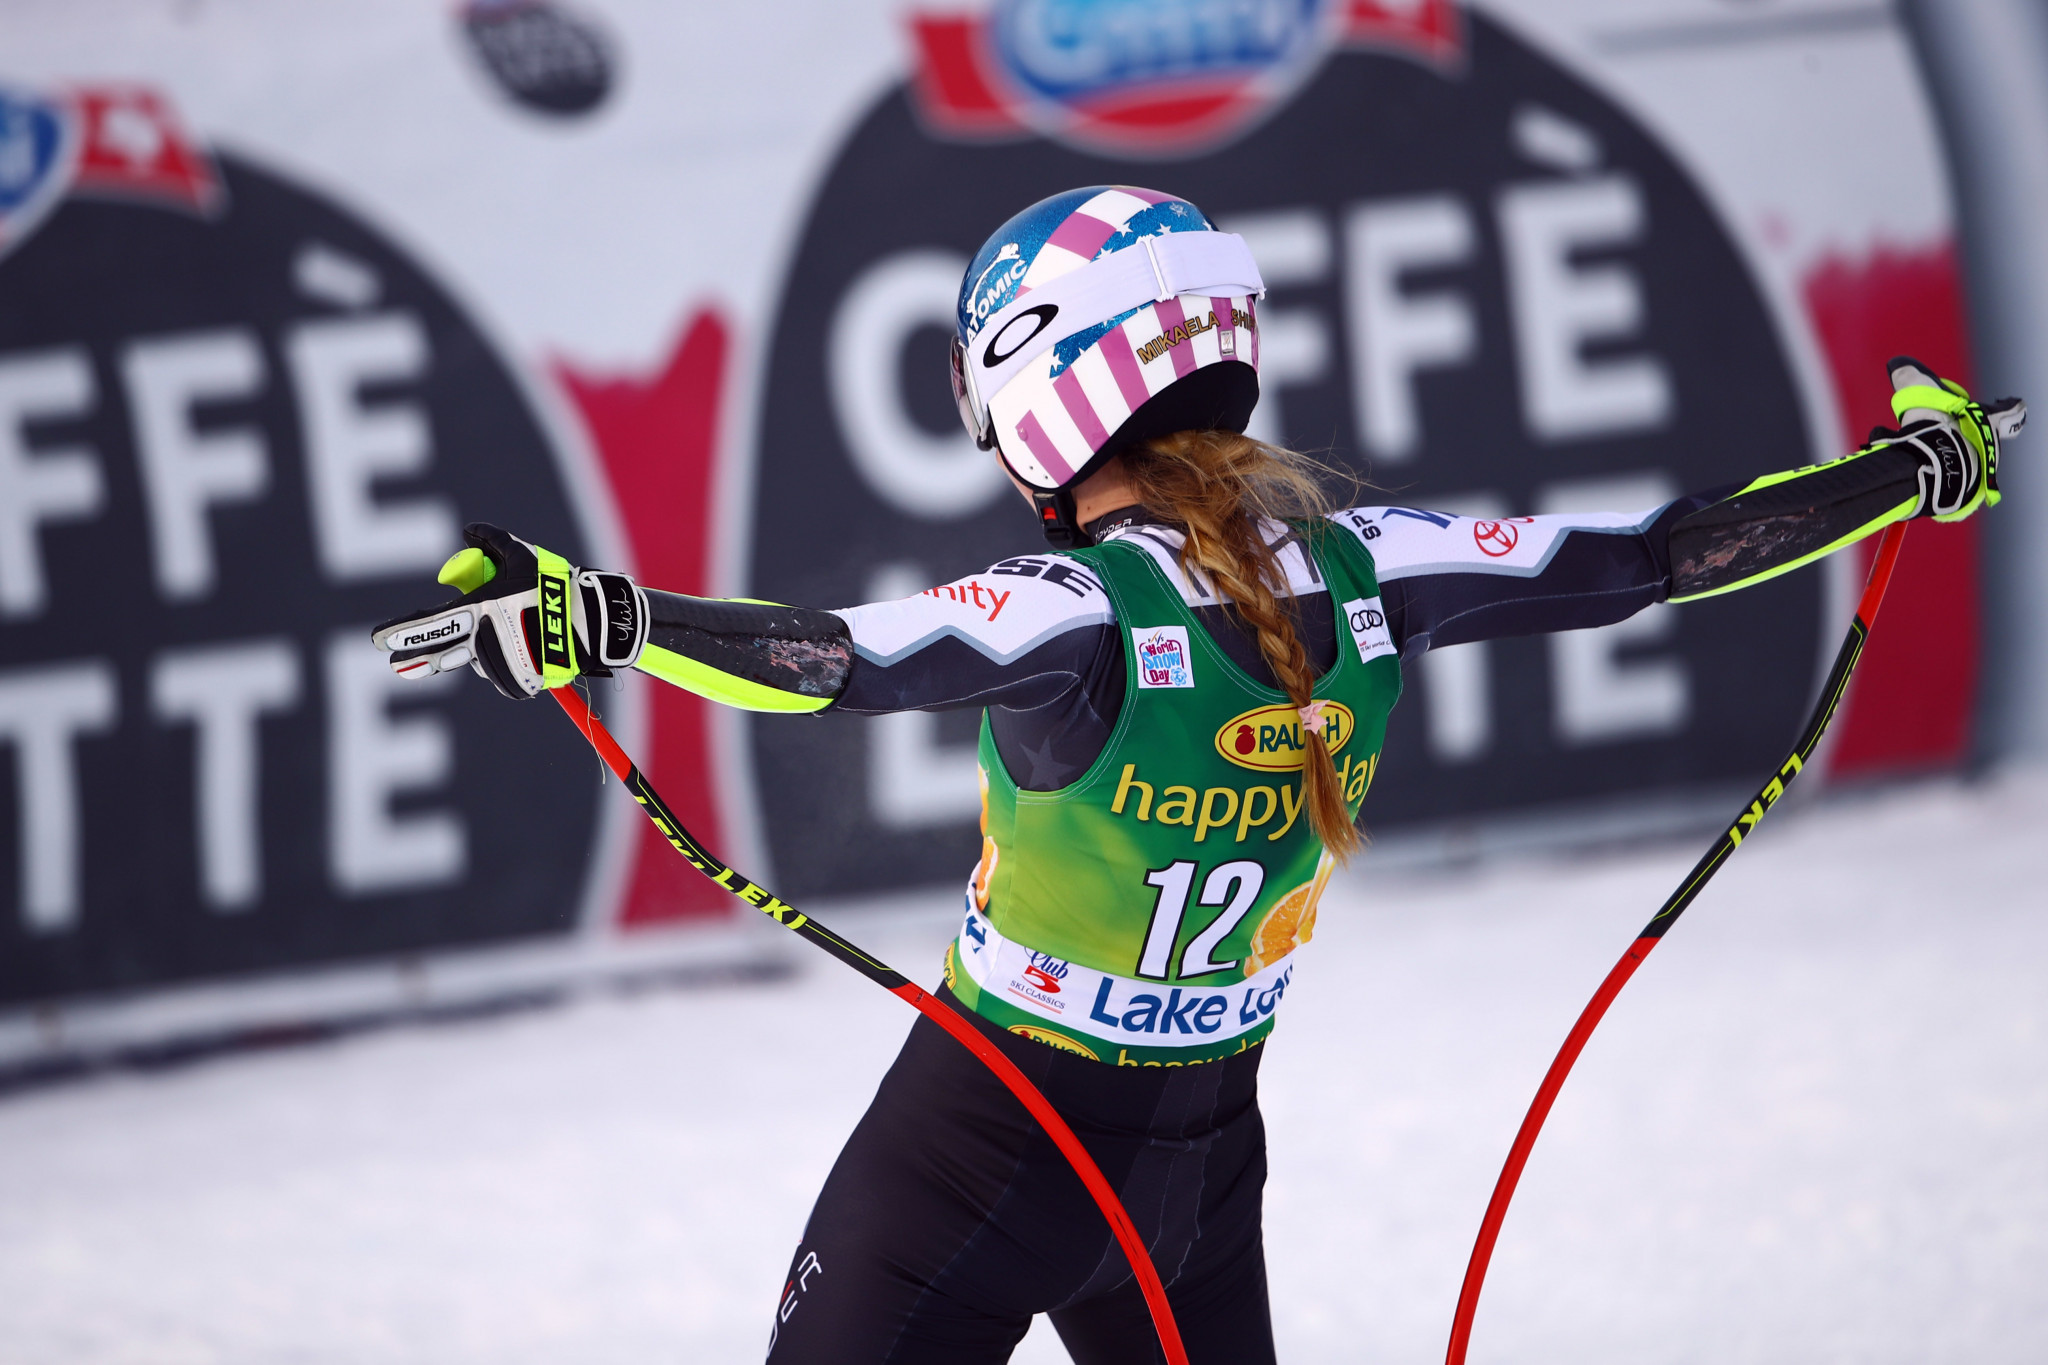 Shiffrin skis into elite club with maiden Alpine Skiing World Cup super-G success